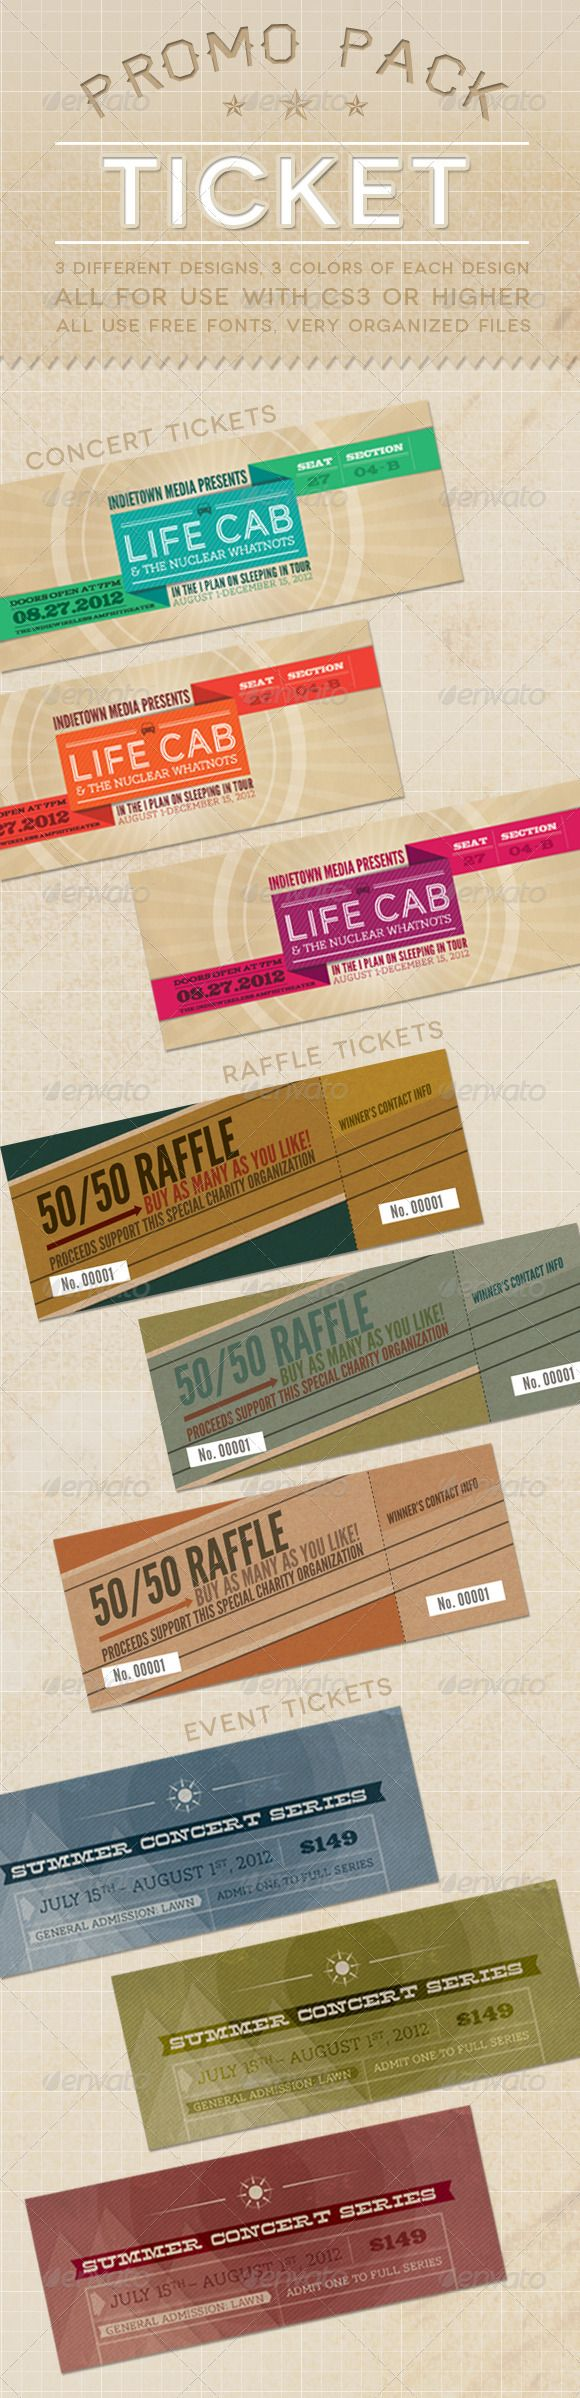 best ideas about raffle ticket printing baby ticket promo pack